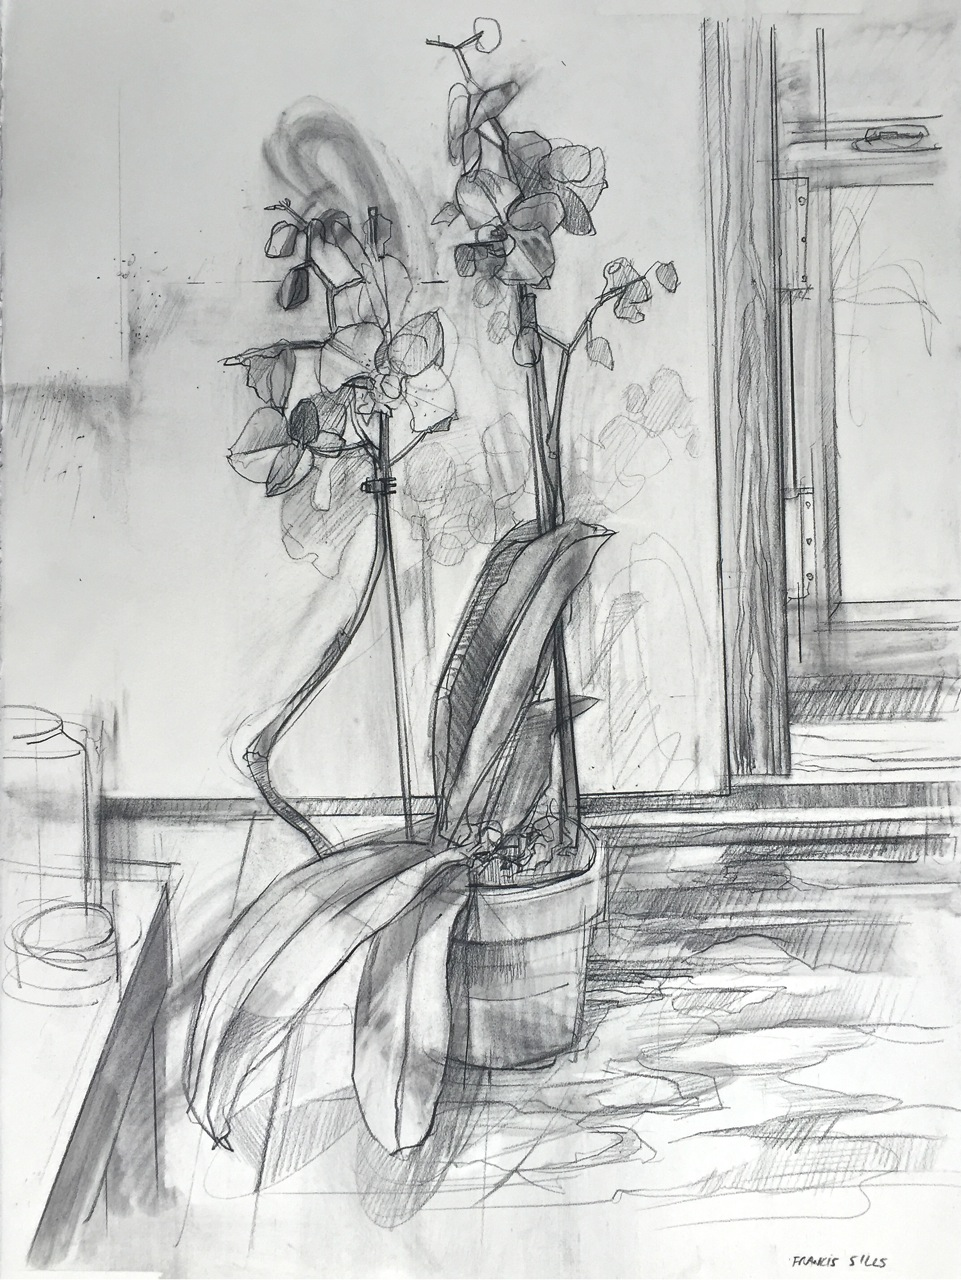 Francis Sills,  Orchid , 2015, charcoal on paper, 34 x 26.50 inches (framed), $1200.